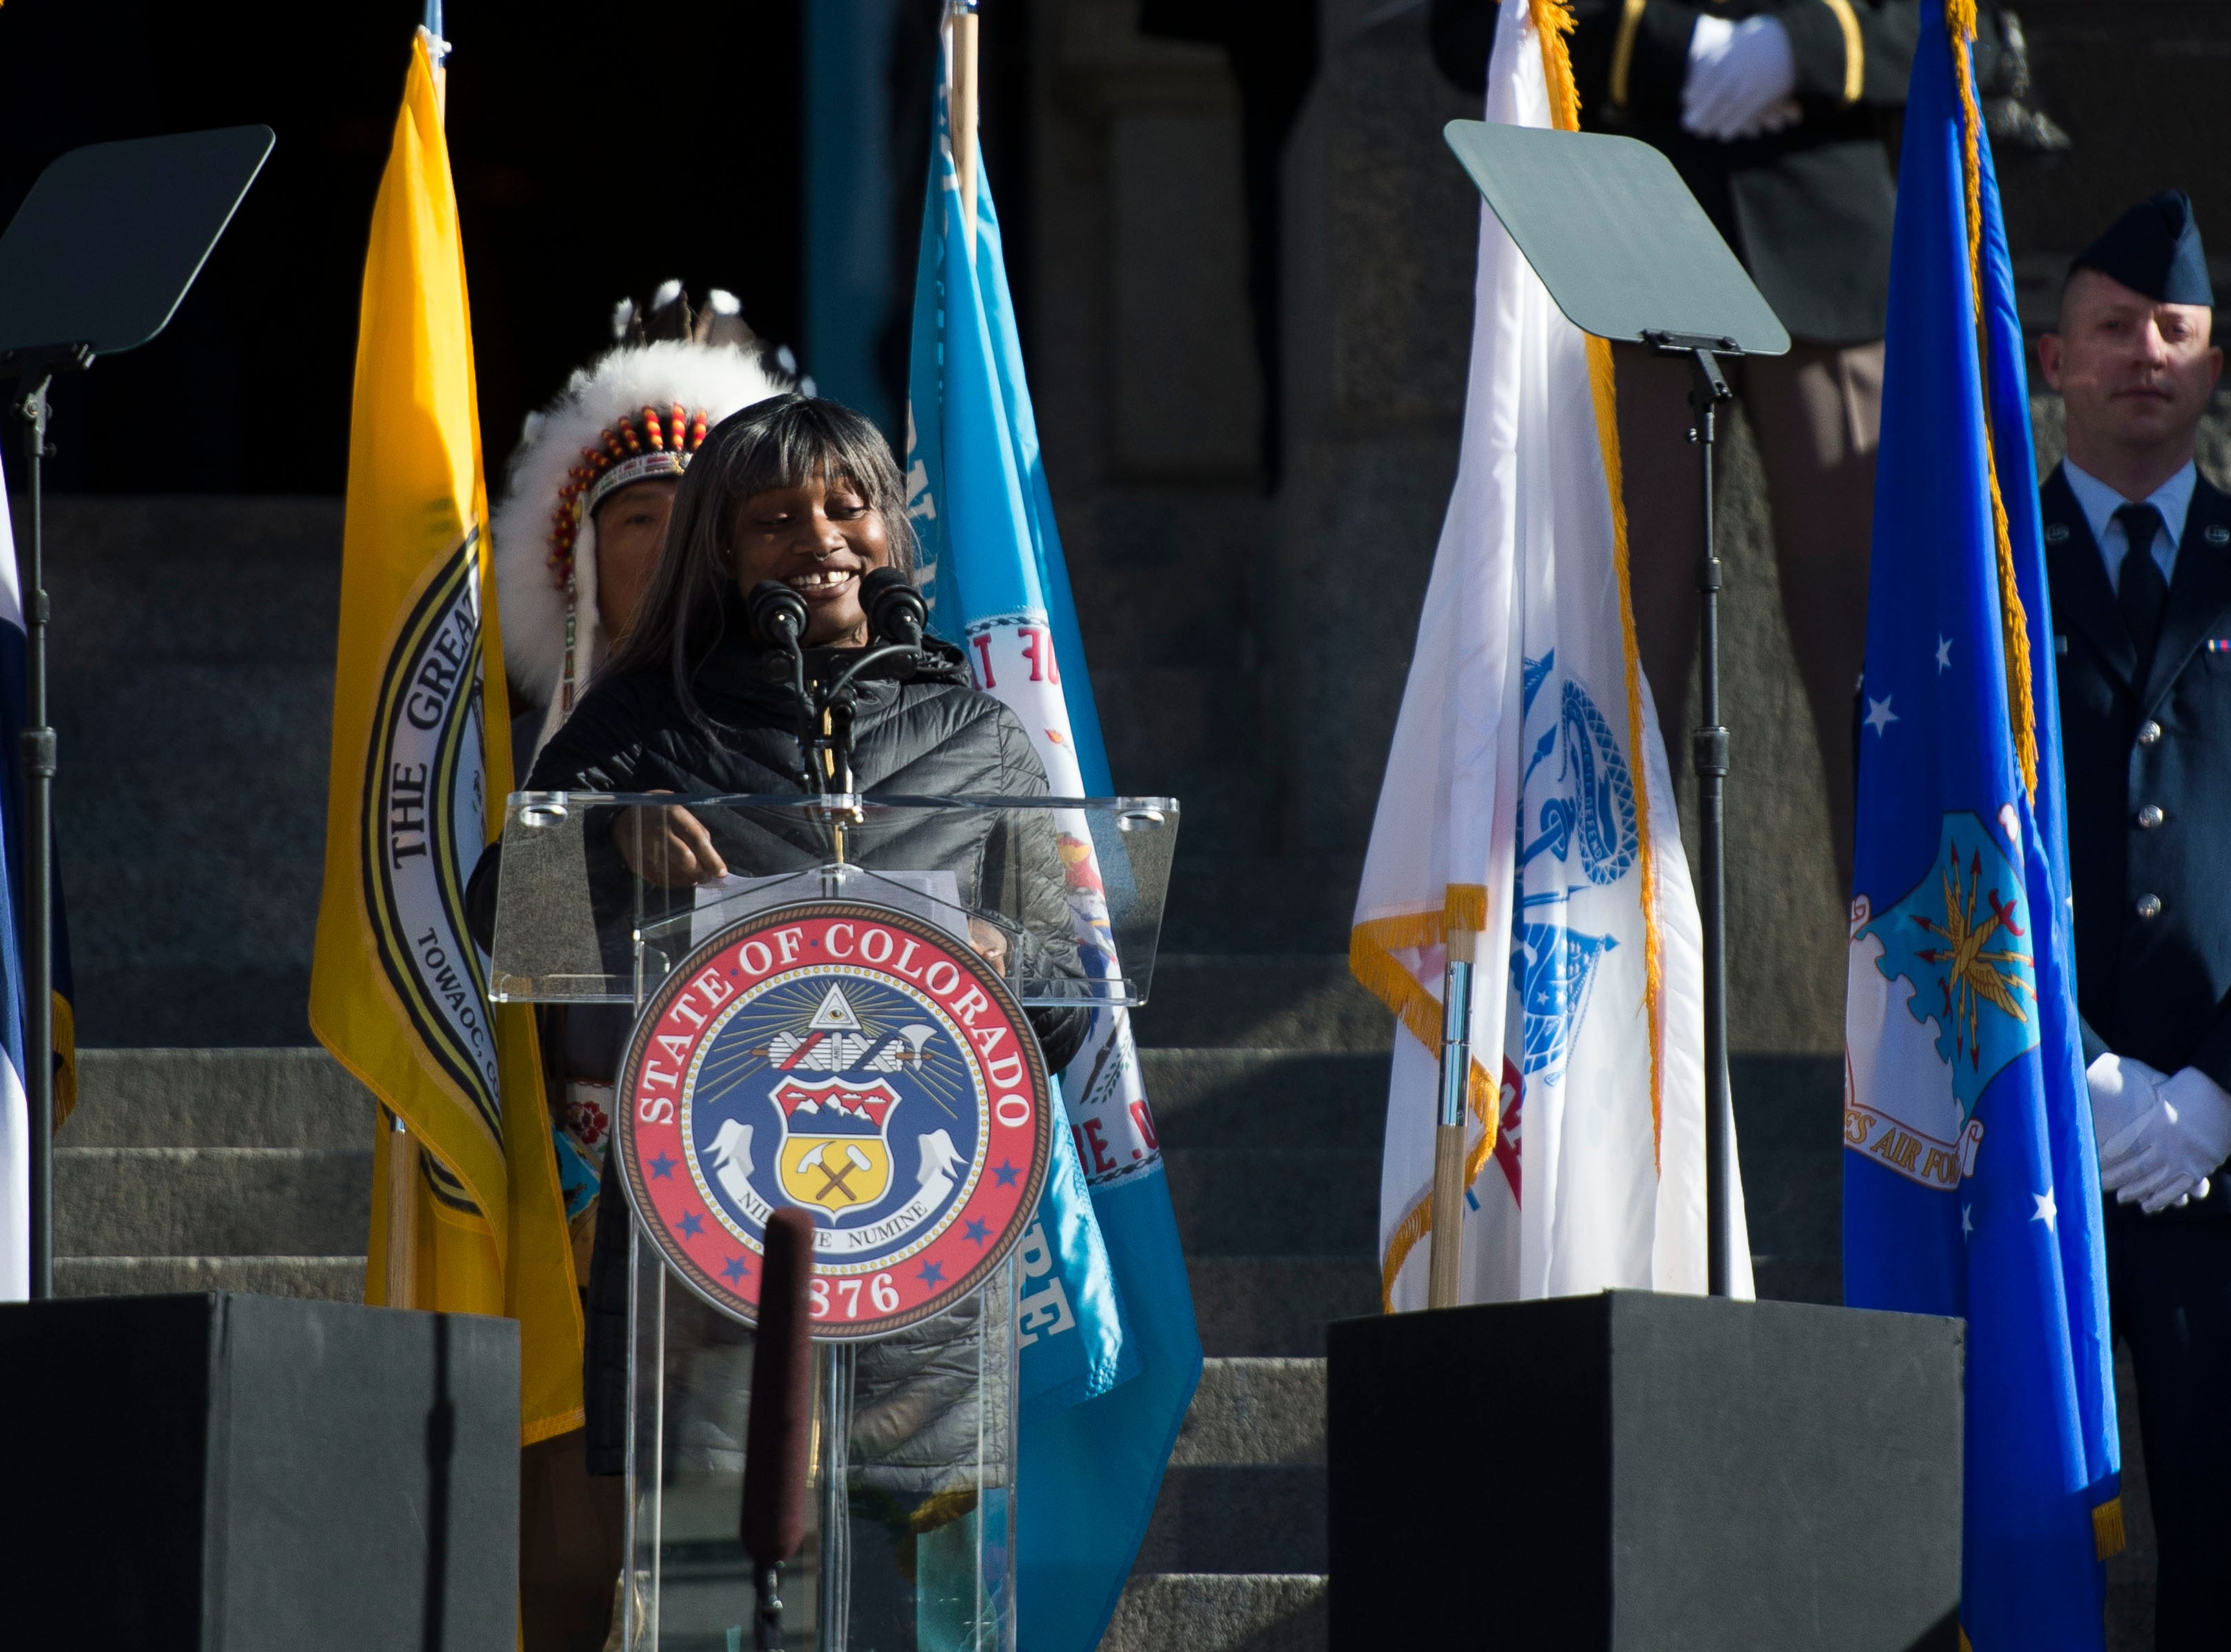 Poet Toluwanimi Obiwole recites a poem during the inauguration of Colorado State Governor Jared Polis on Tuesday, Jan. 8, 2019, in front of the Colorado State Capital building in Denver, Colo.